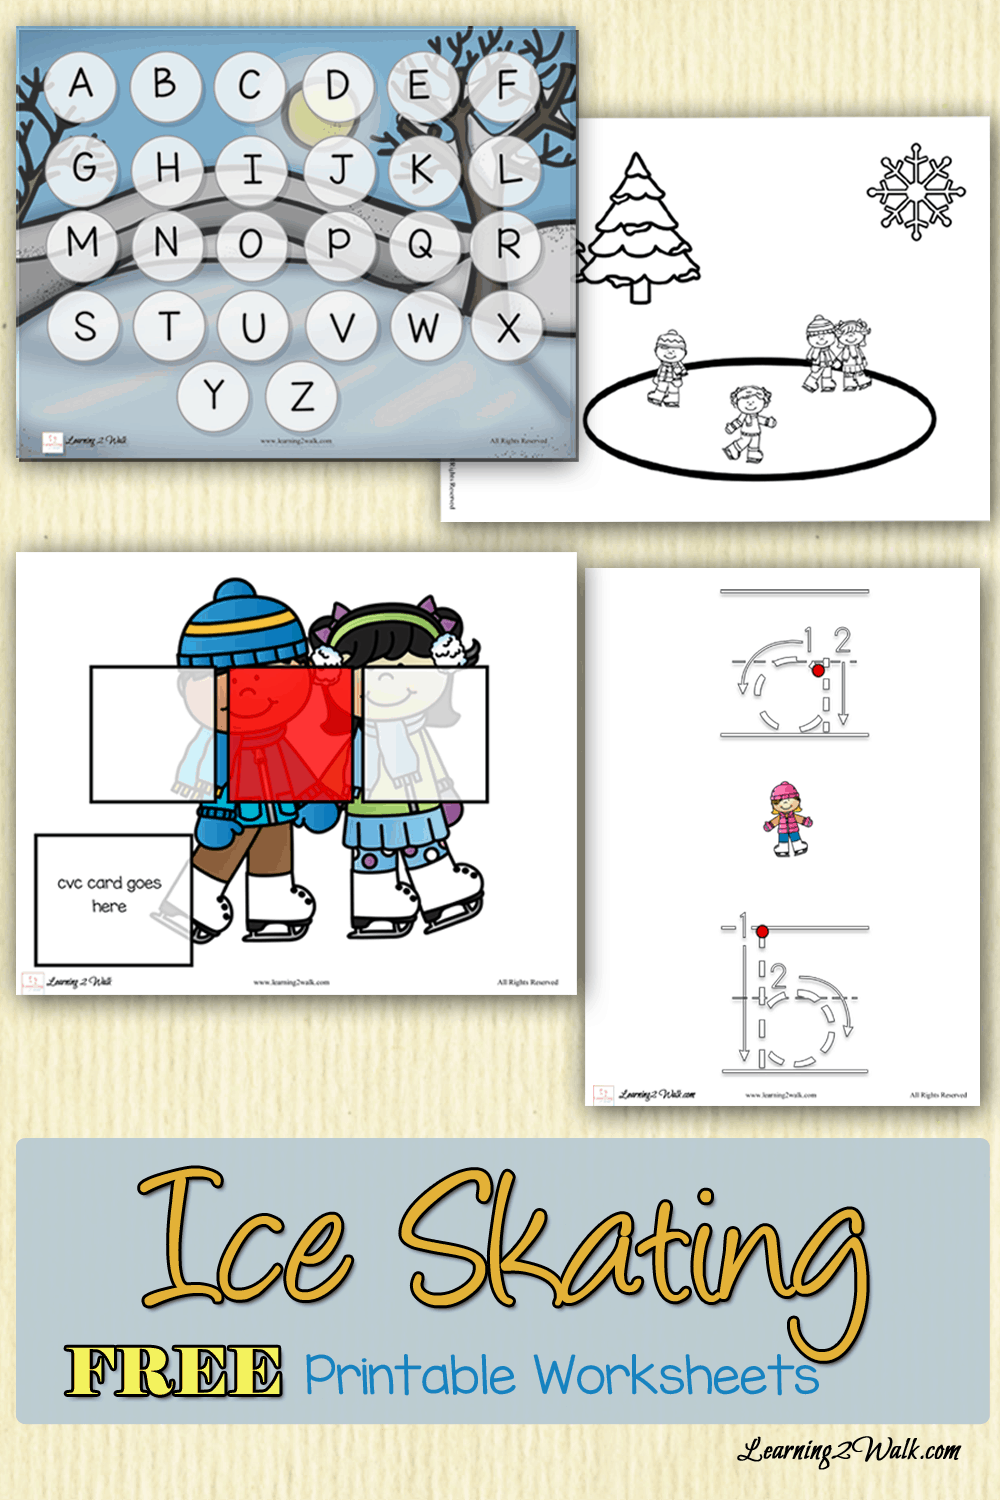 Ice Skating Free Printable Worksheets